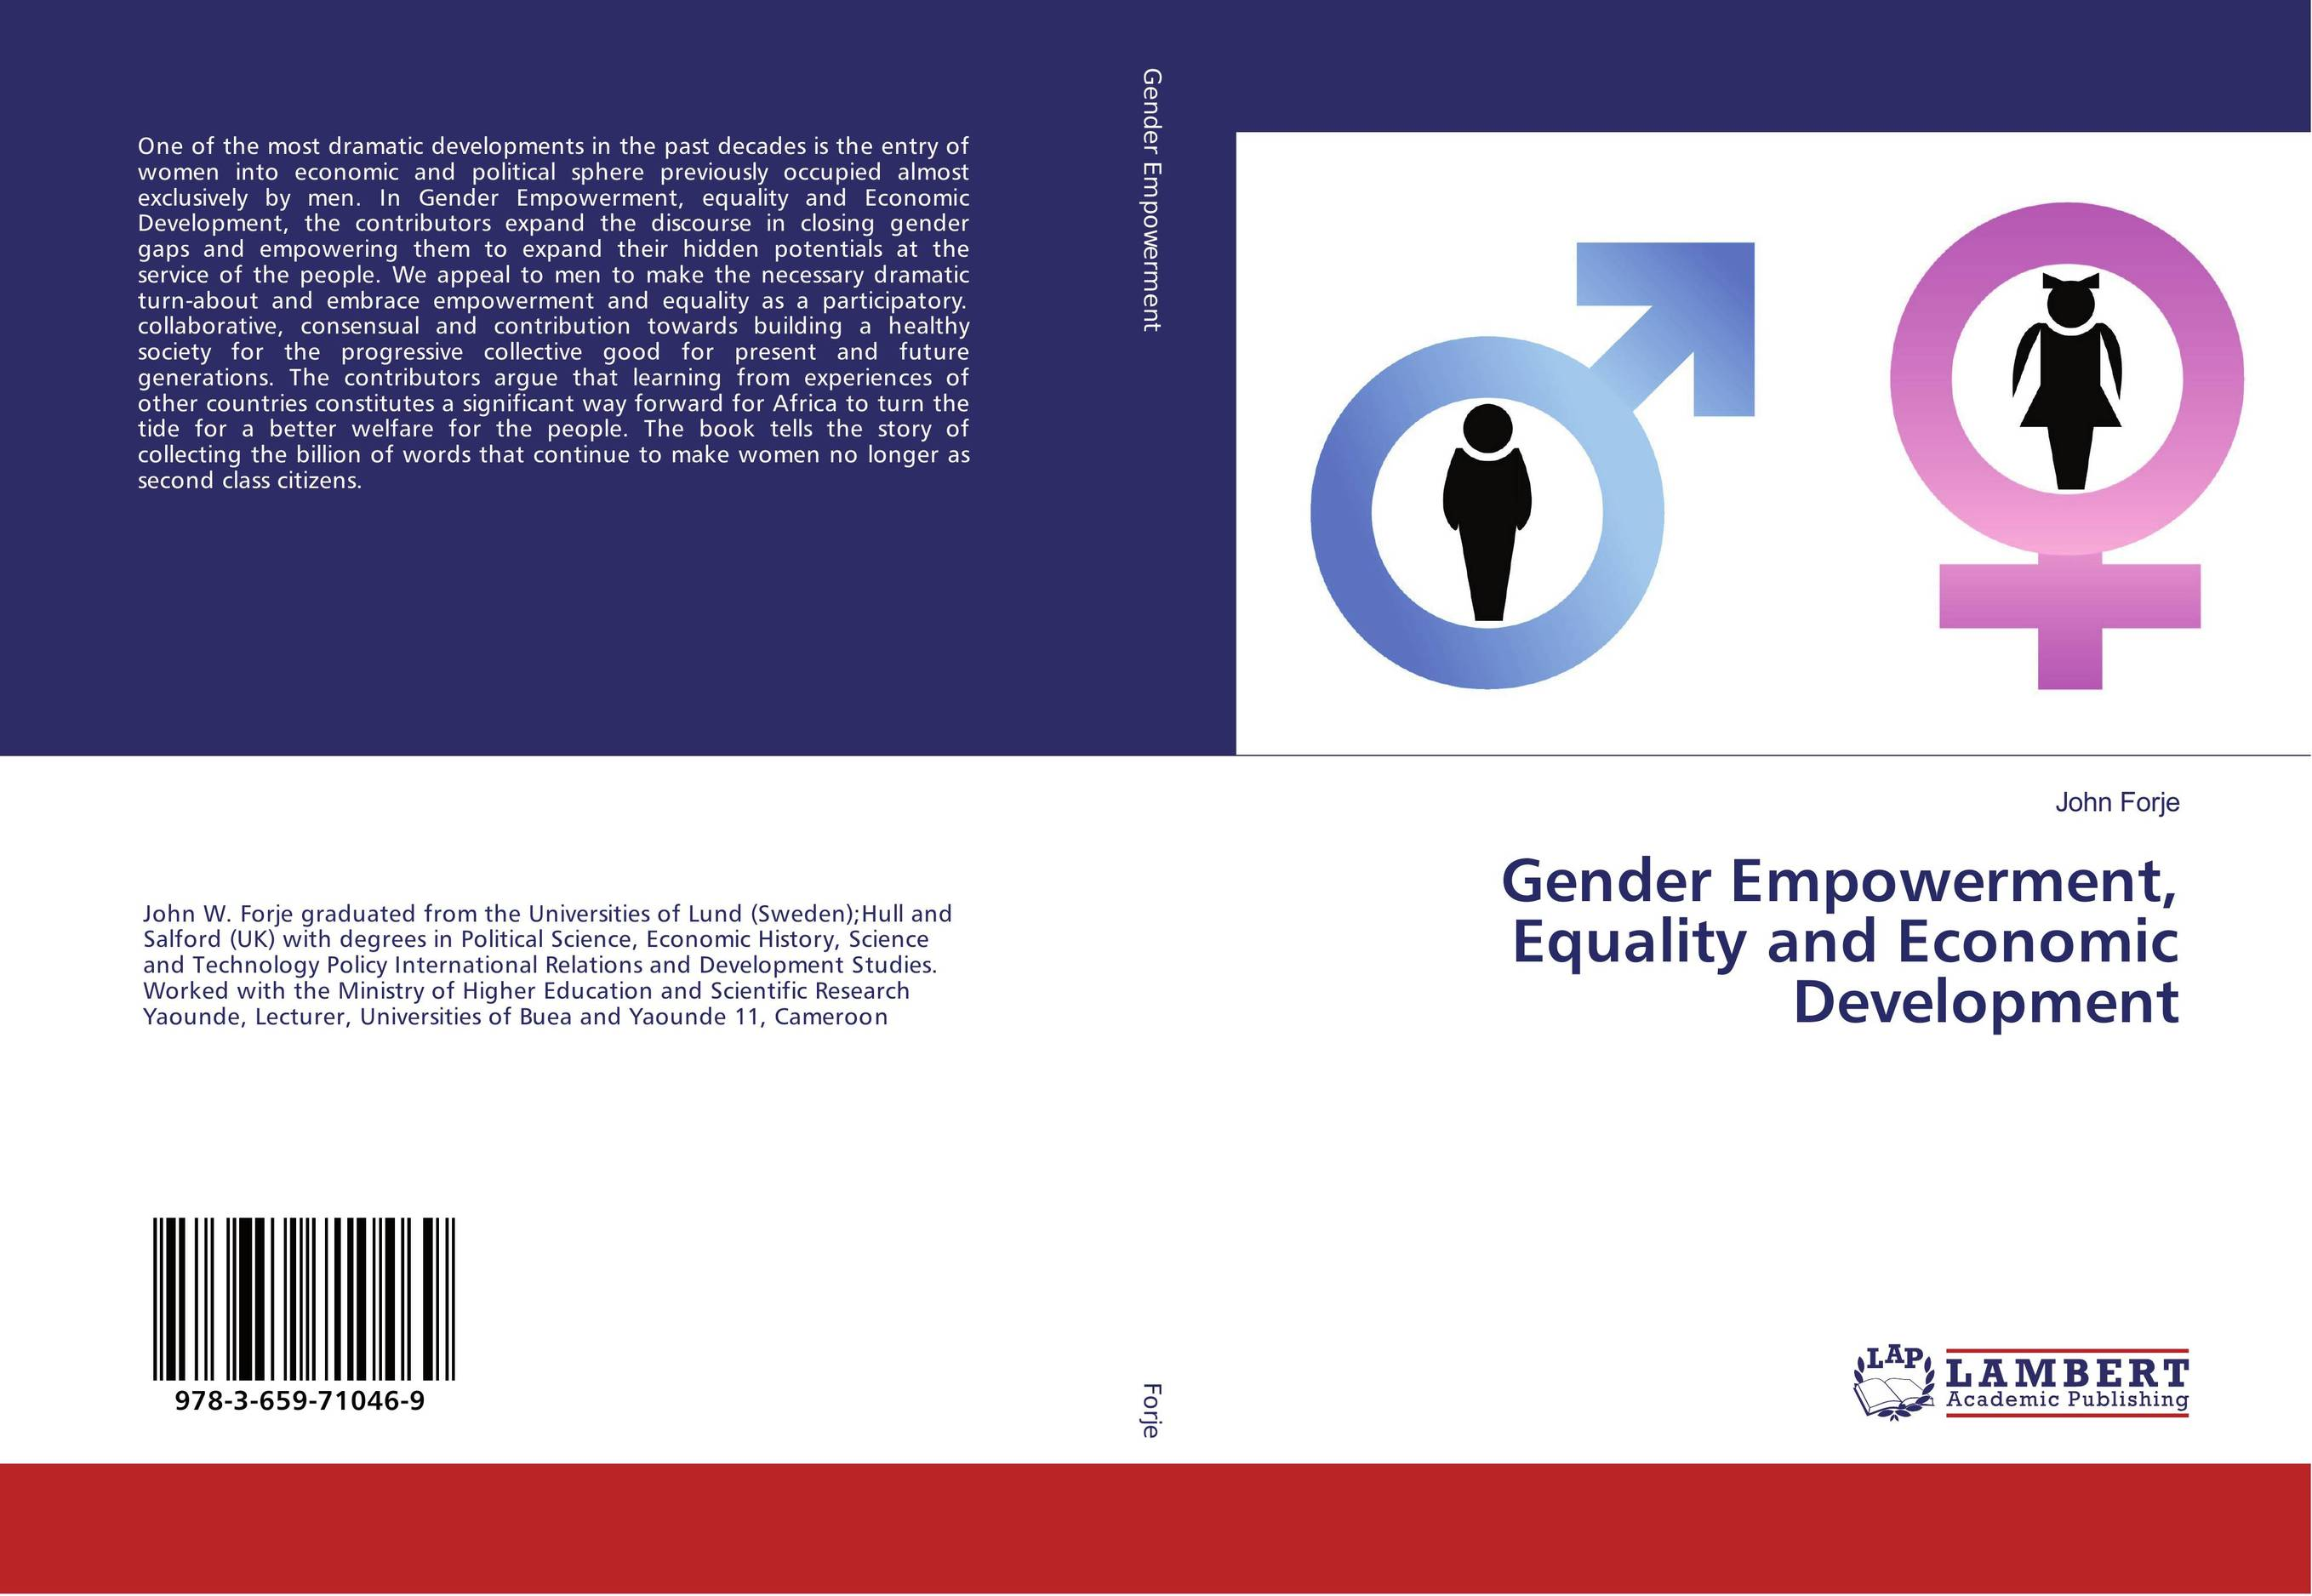 Gender Empowerment, Equality and Economic Development theatre for women empowerment and development